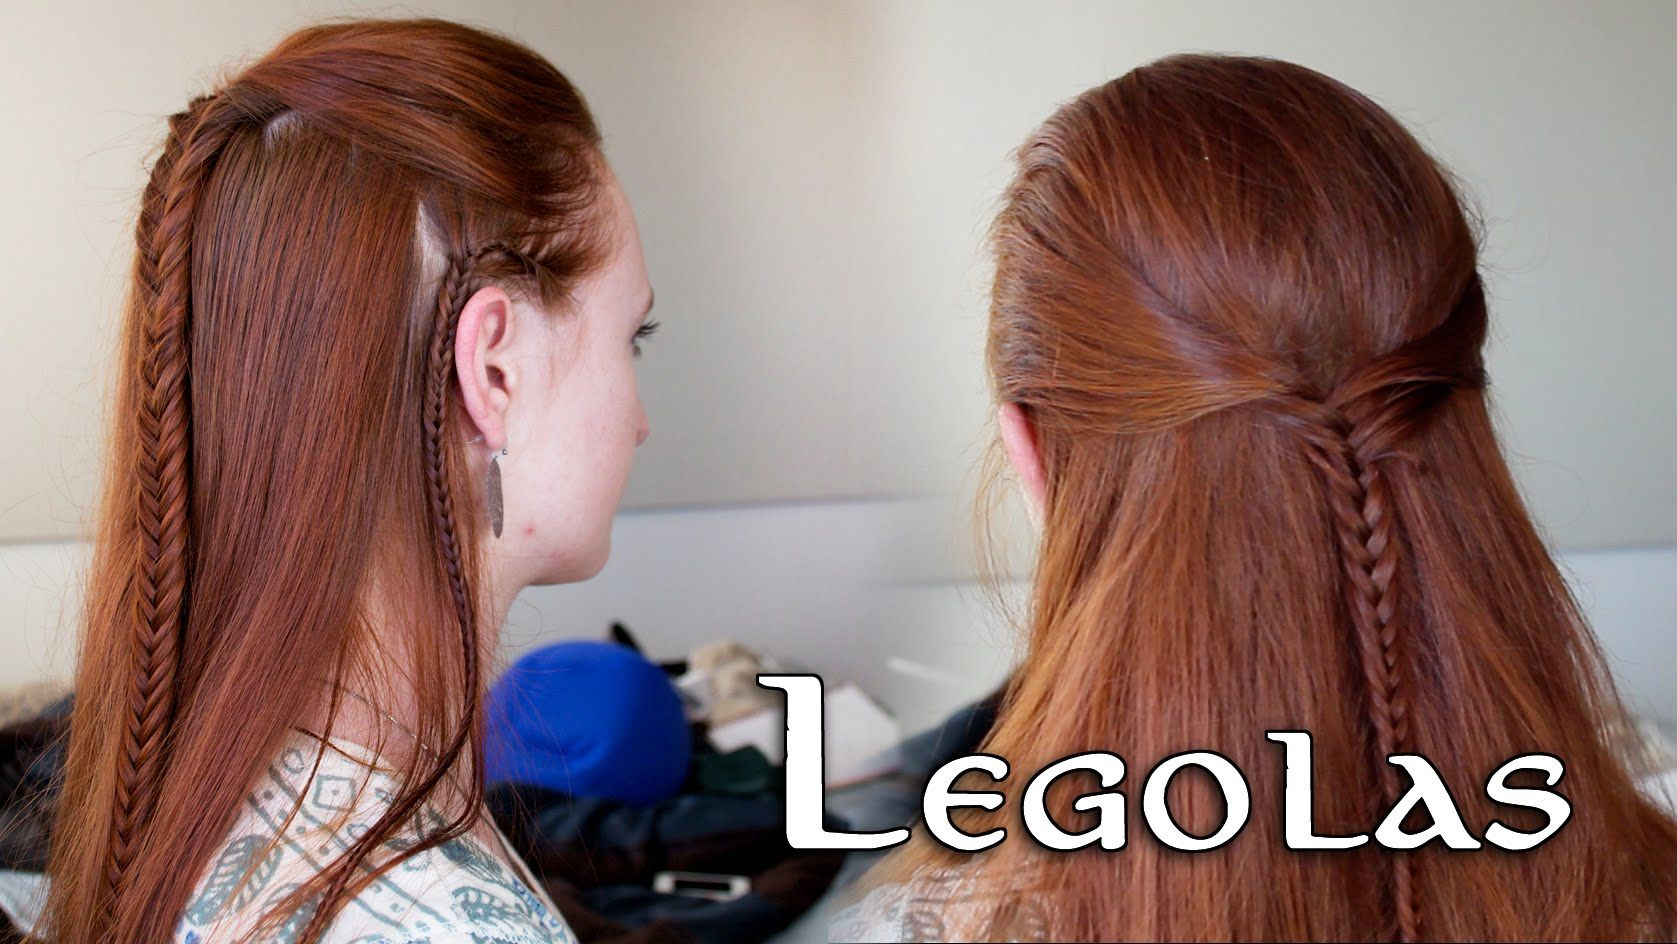 Lord Of The Rings Hair Tutorial Legolas I Love This Tutorial I M Going To Wear This To Co Op Sometime Elf Hair Hair Tutorial Elvish Hairstyles